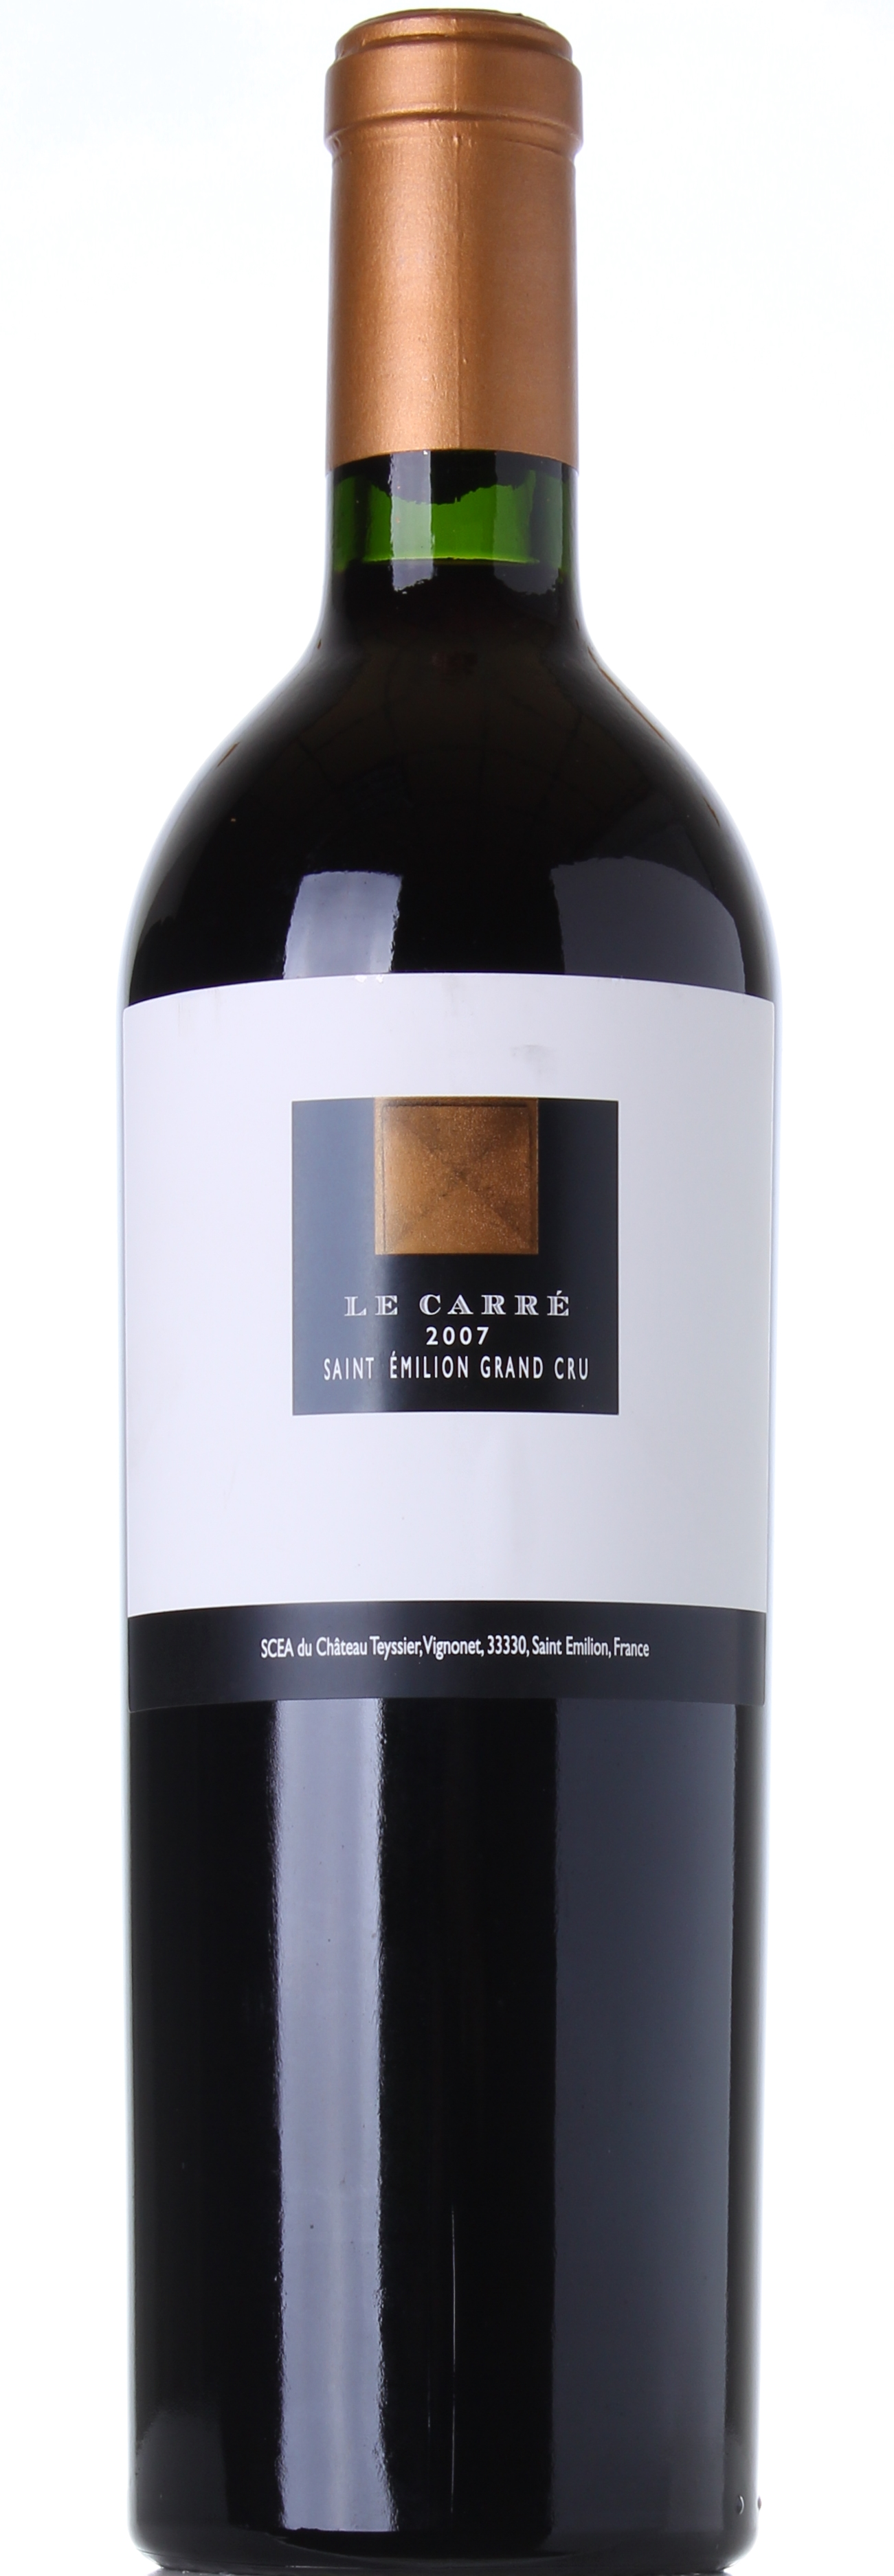 CHATEAU TEYSSIER LE CARRE' 2007